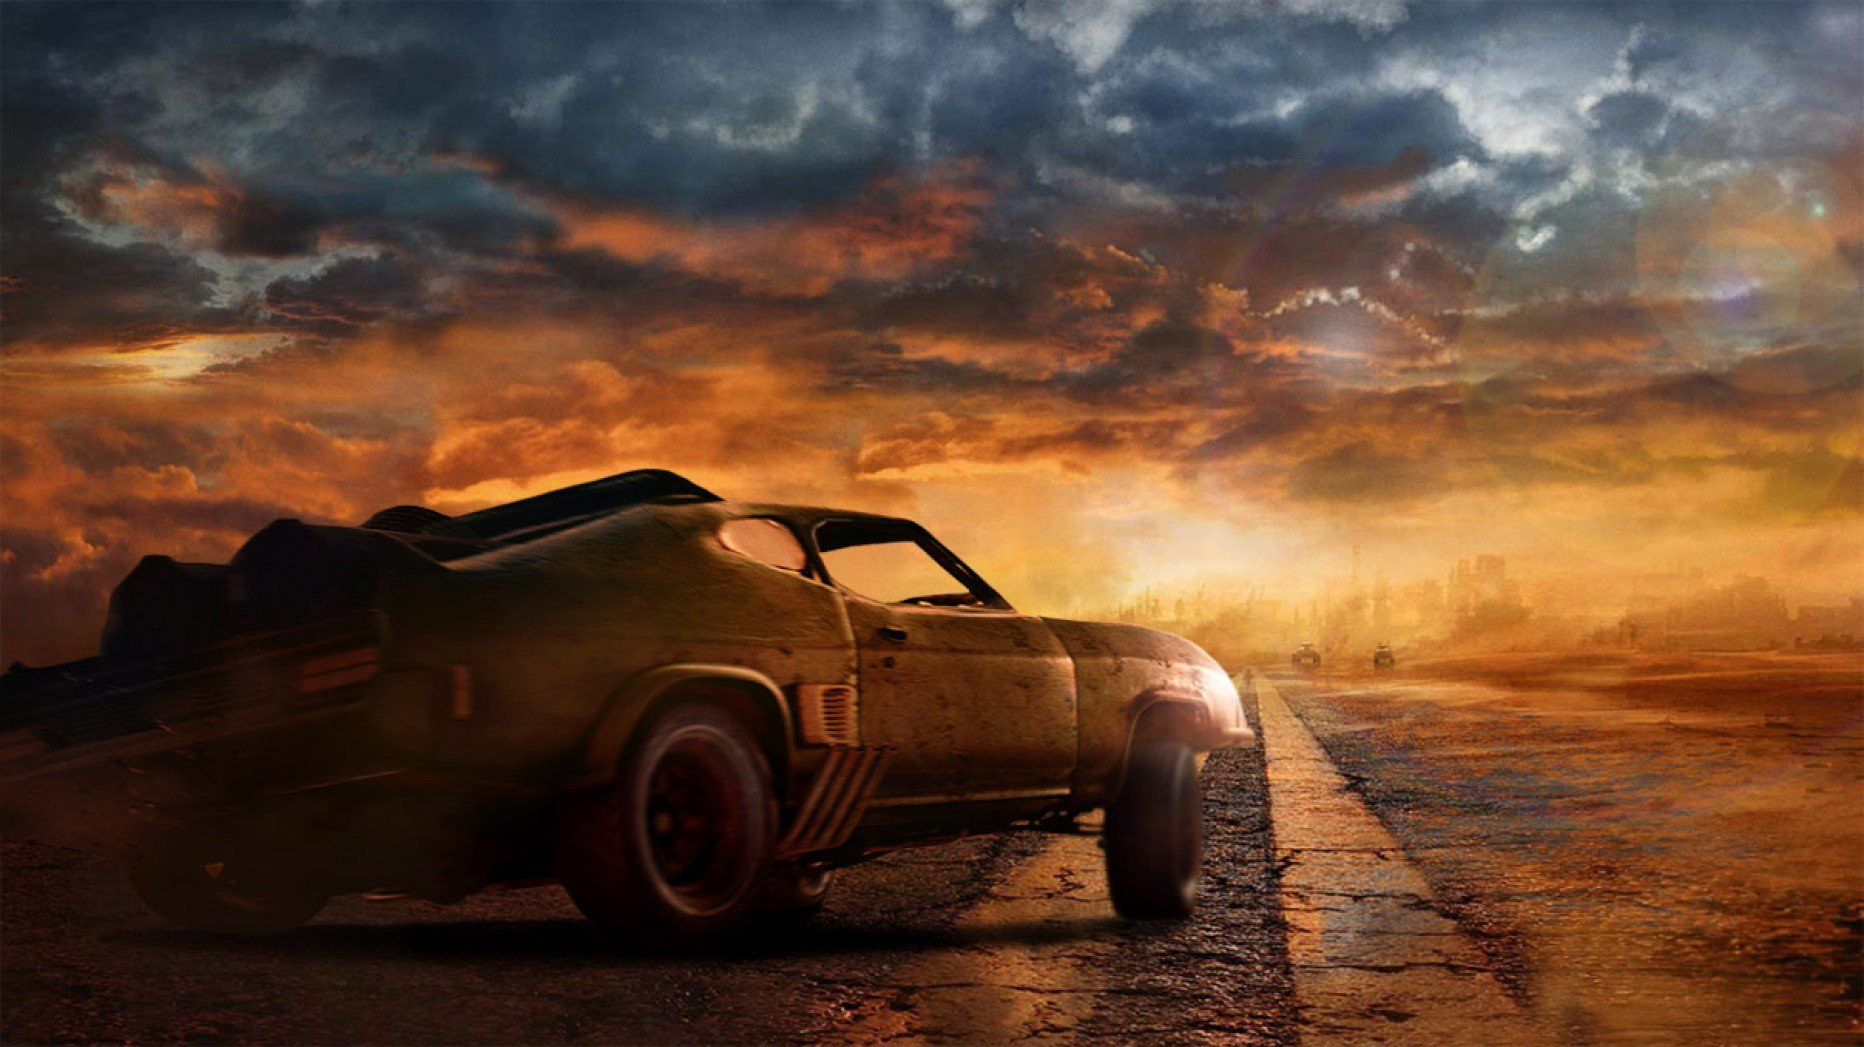 Mad Max HD Wallpaper - WallpaperSafari